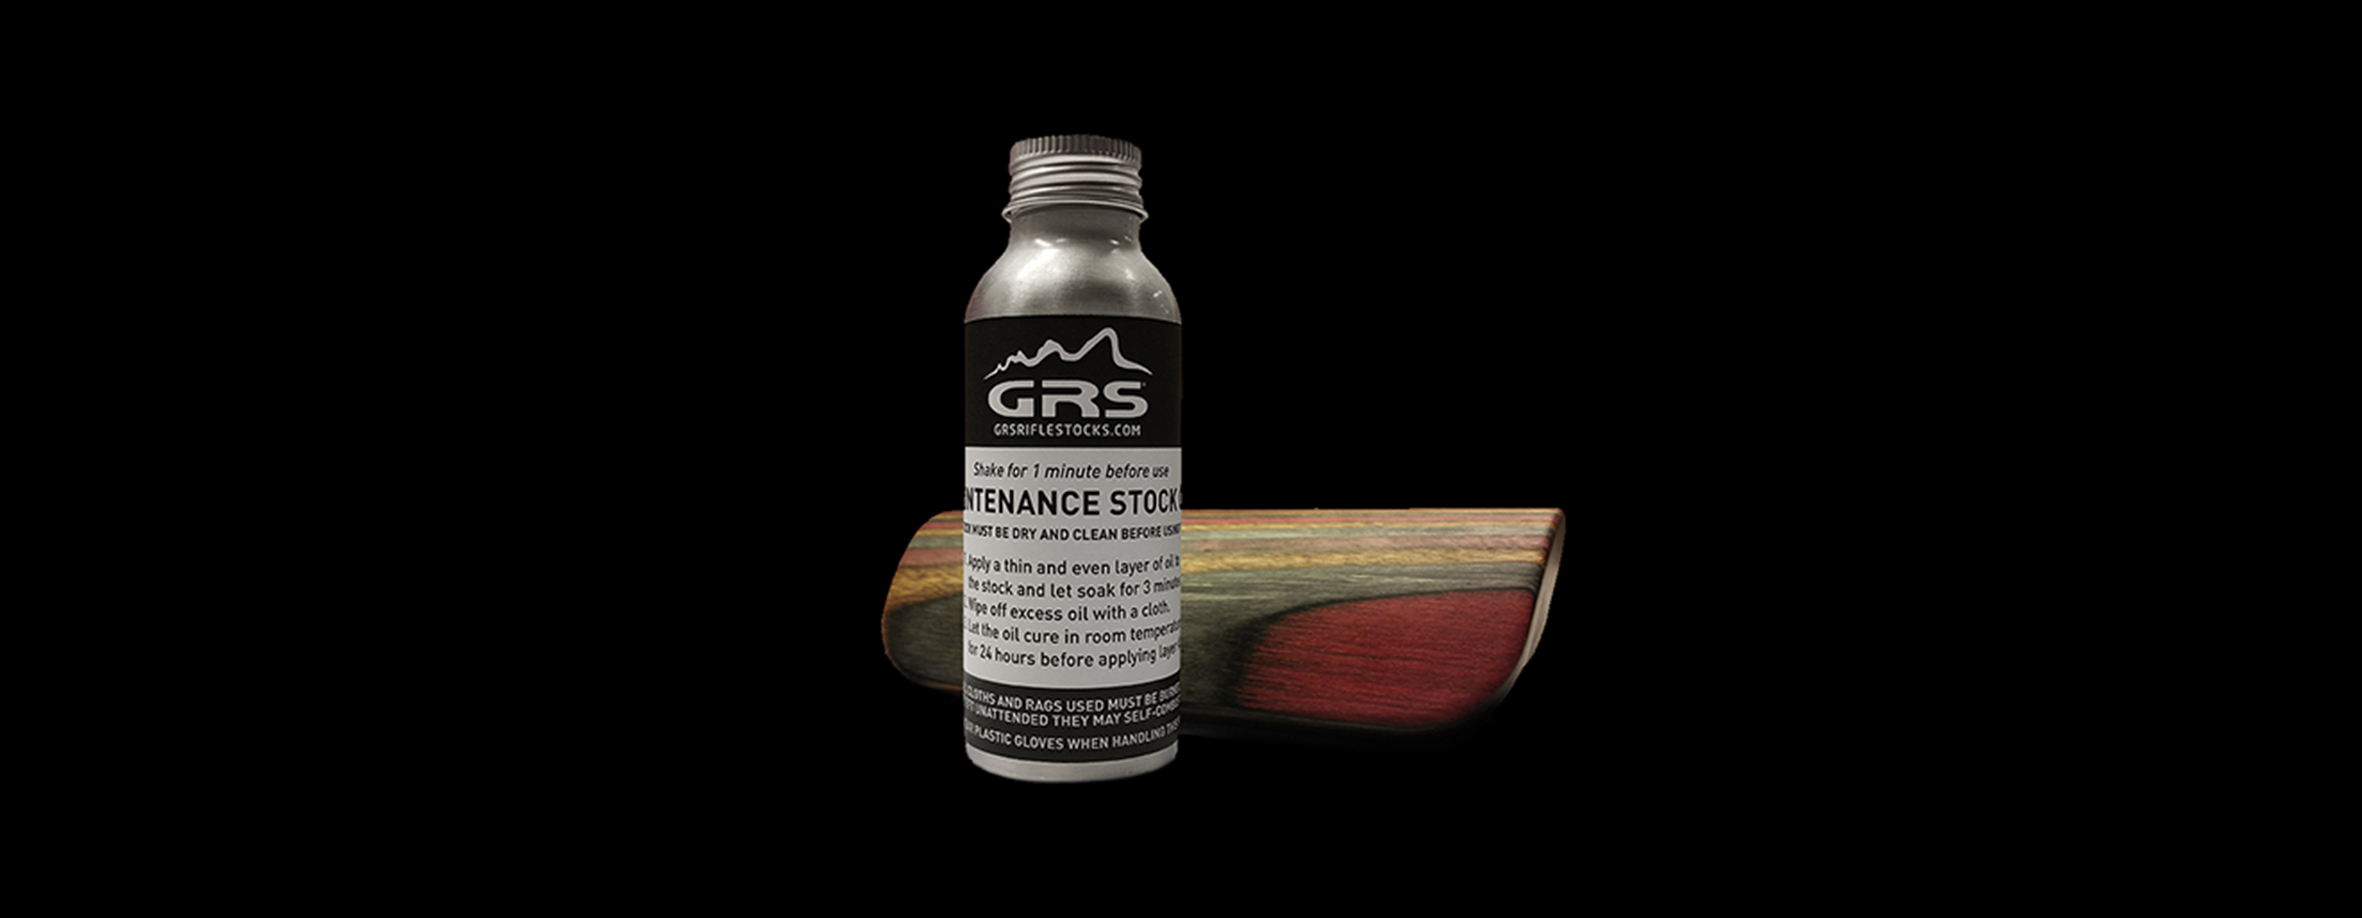 GRS Maintenance oil - GRS Riflestocks